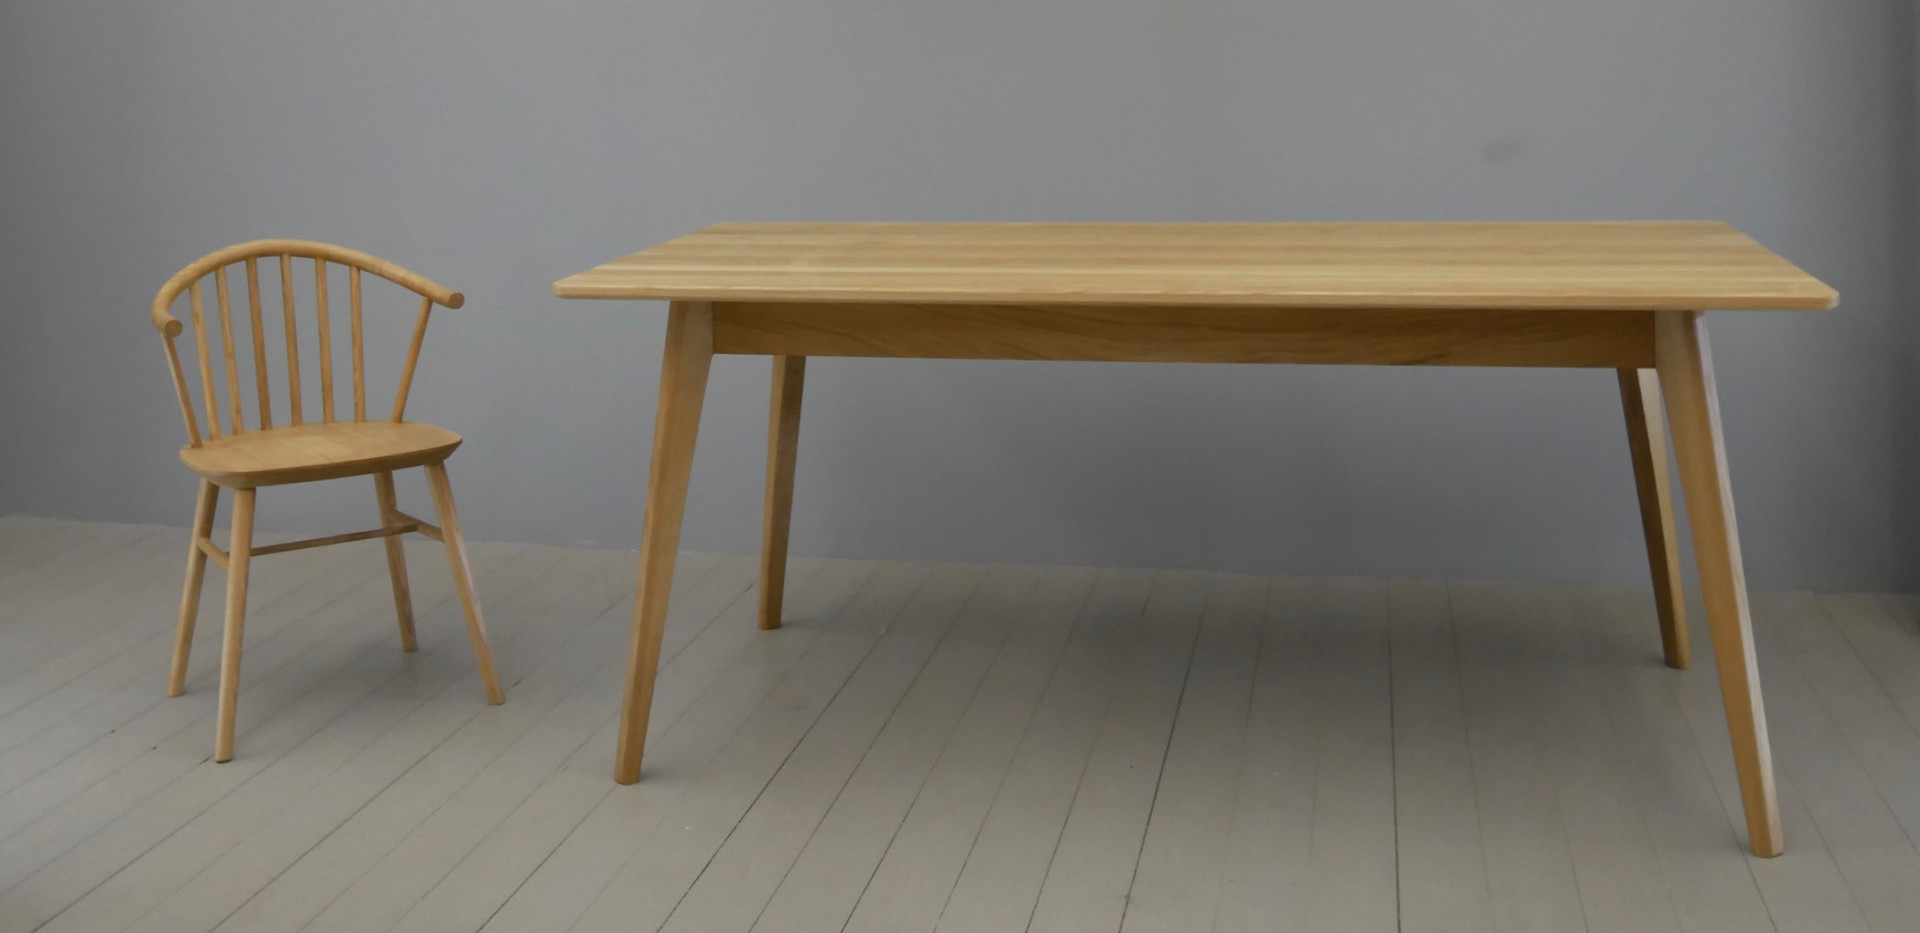 Morlaix Solid Oak Dining Table with Enzo Chair